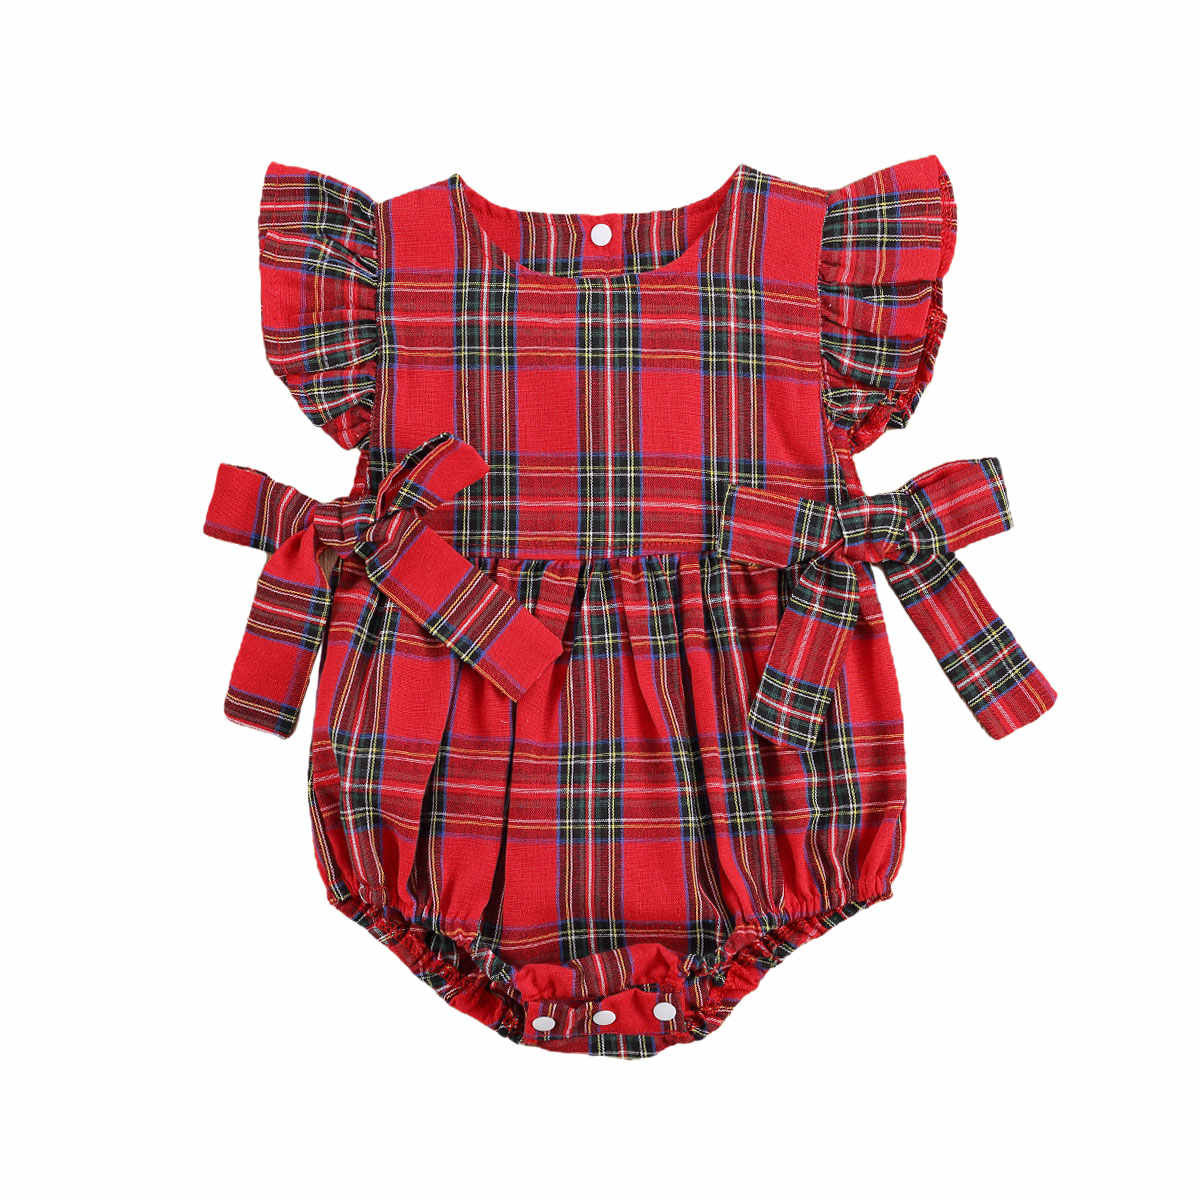 Infant Baby Girl Plaid Print Jumpsuit with Bow-knot, Ruffle Sleeve O-neck Tops, Button-up Clothing for Summer